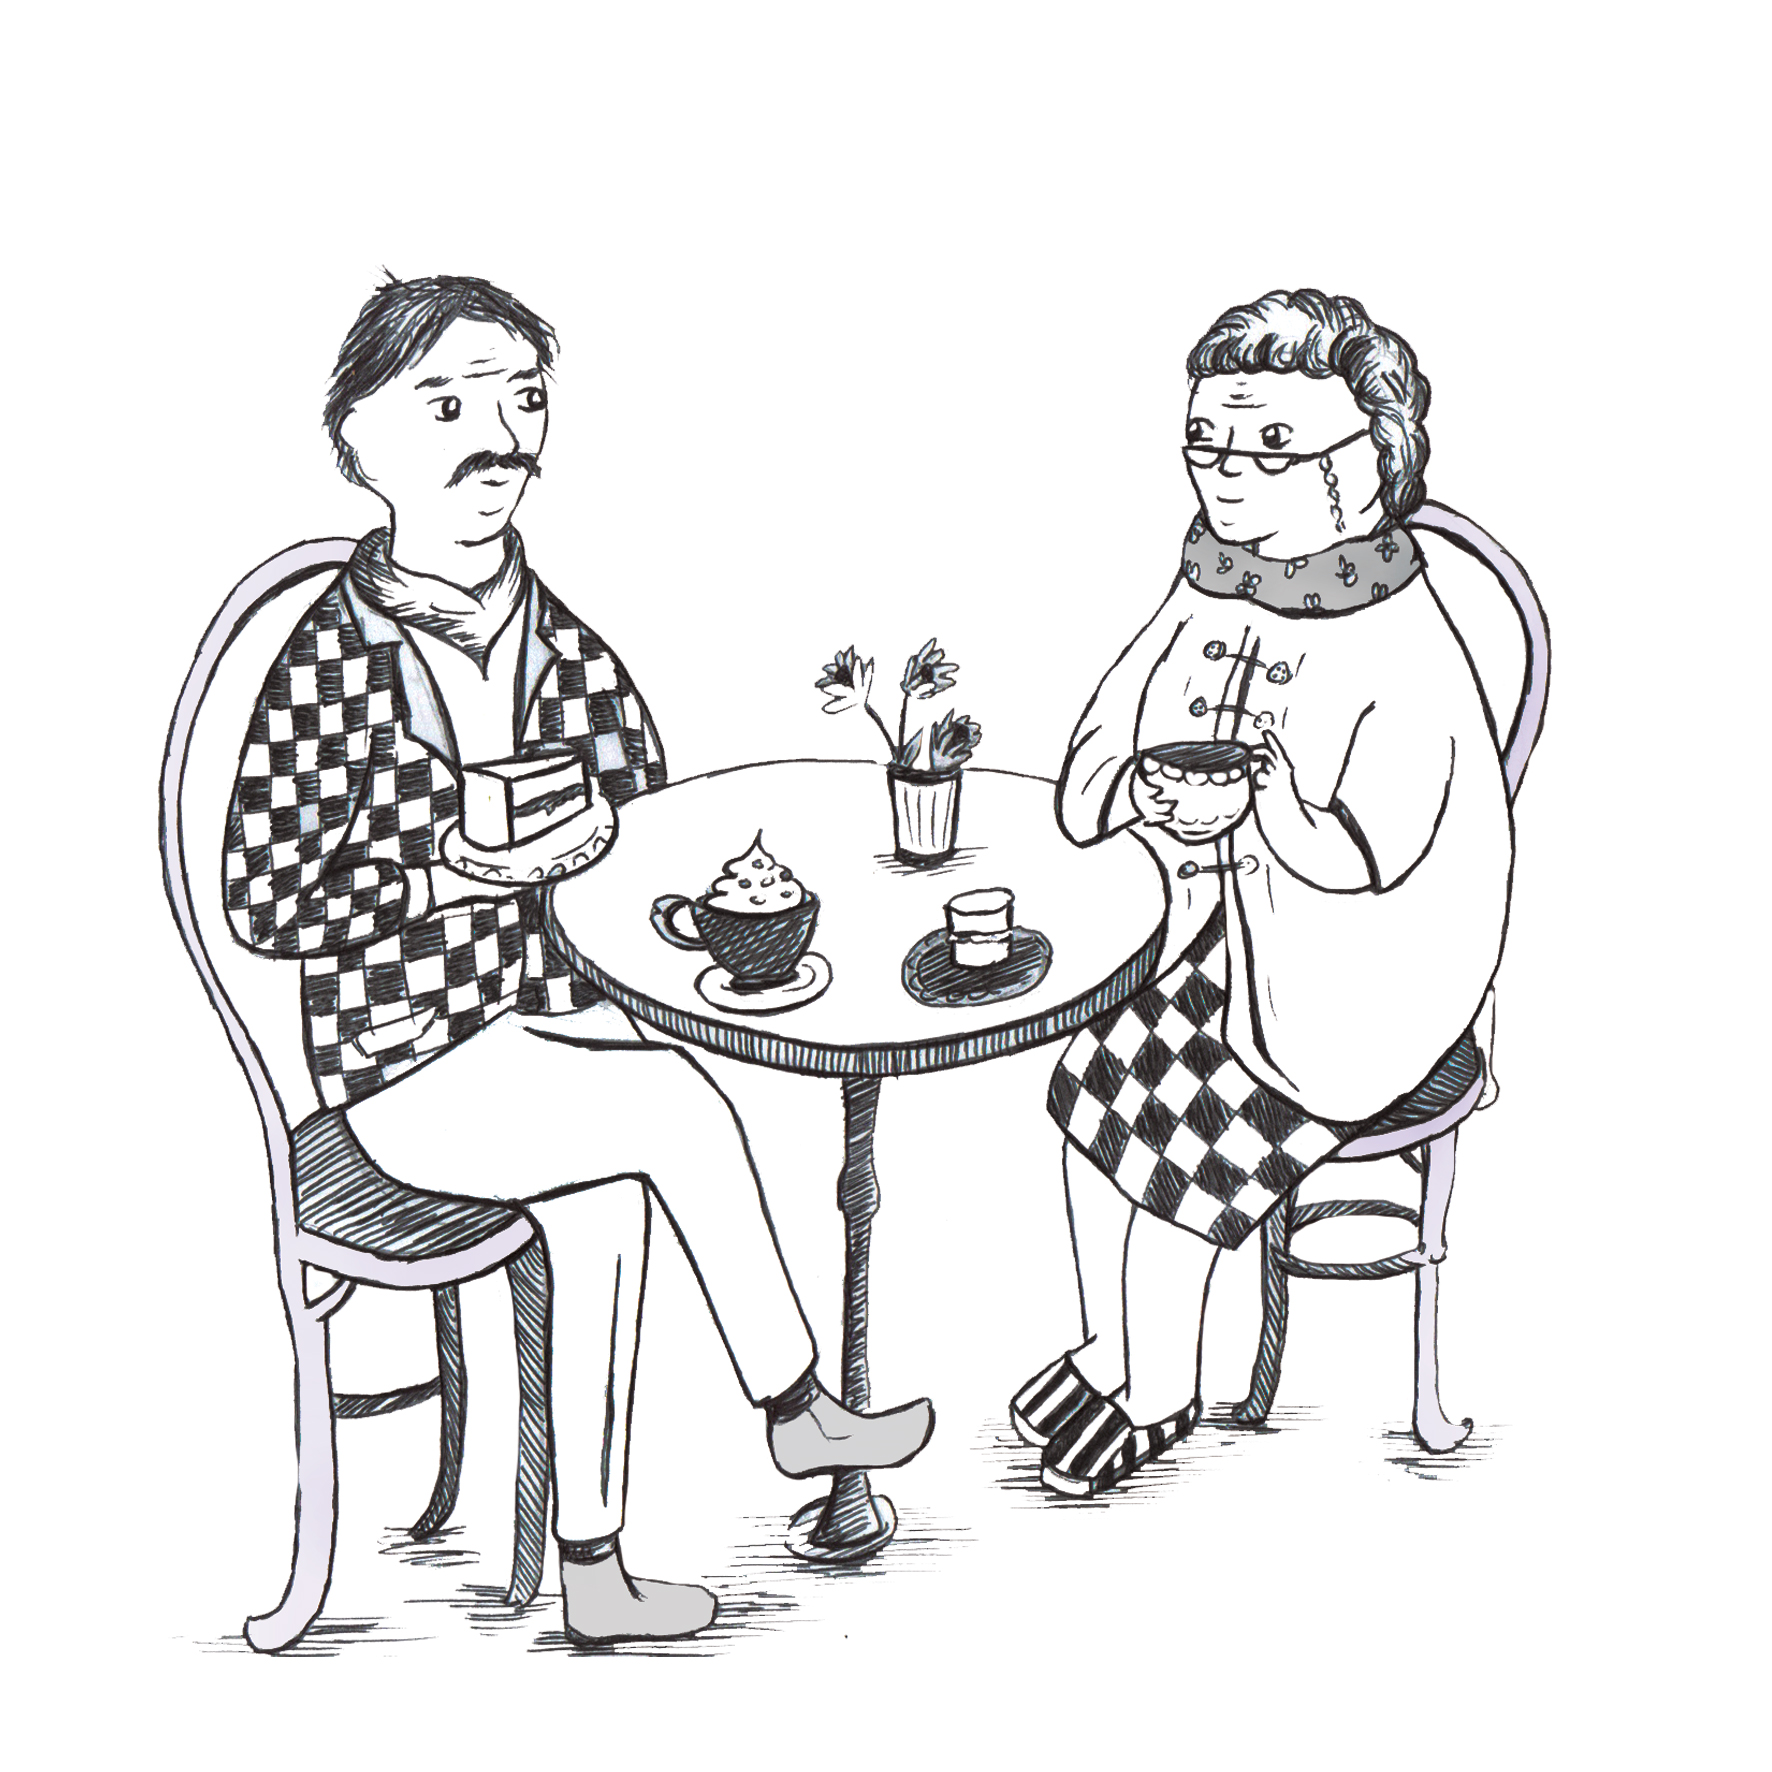 A black and white line illustration of an elderly couple enjoying tea and cakes. In fine line pen.